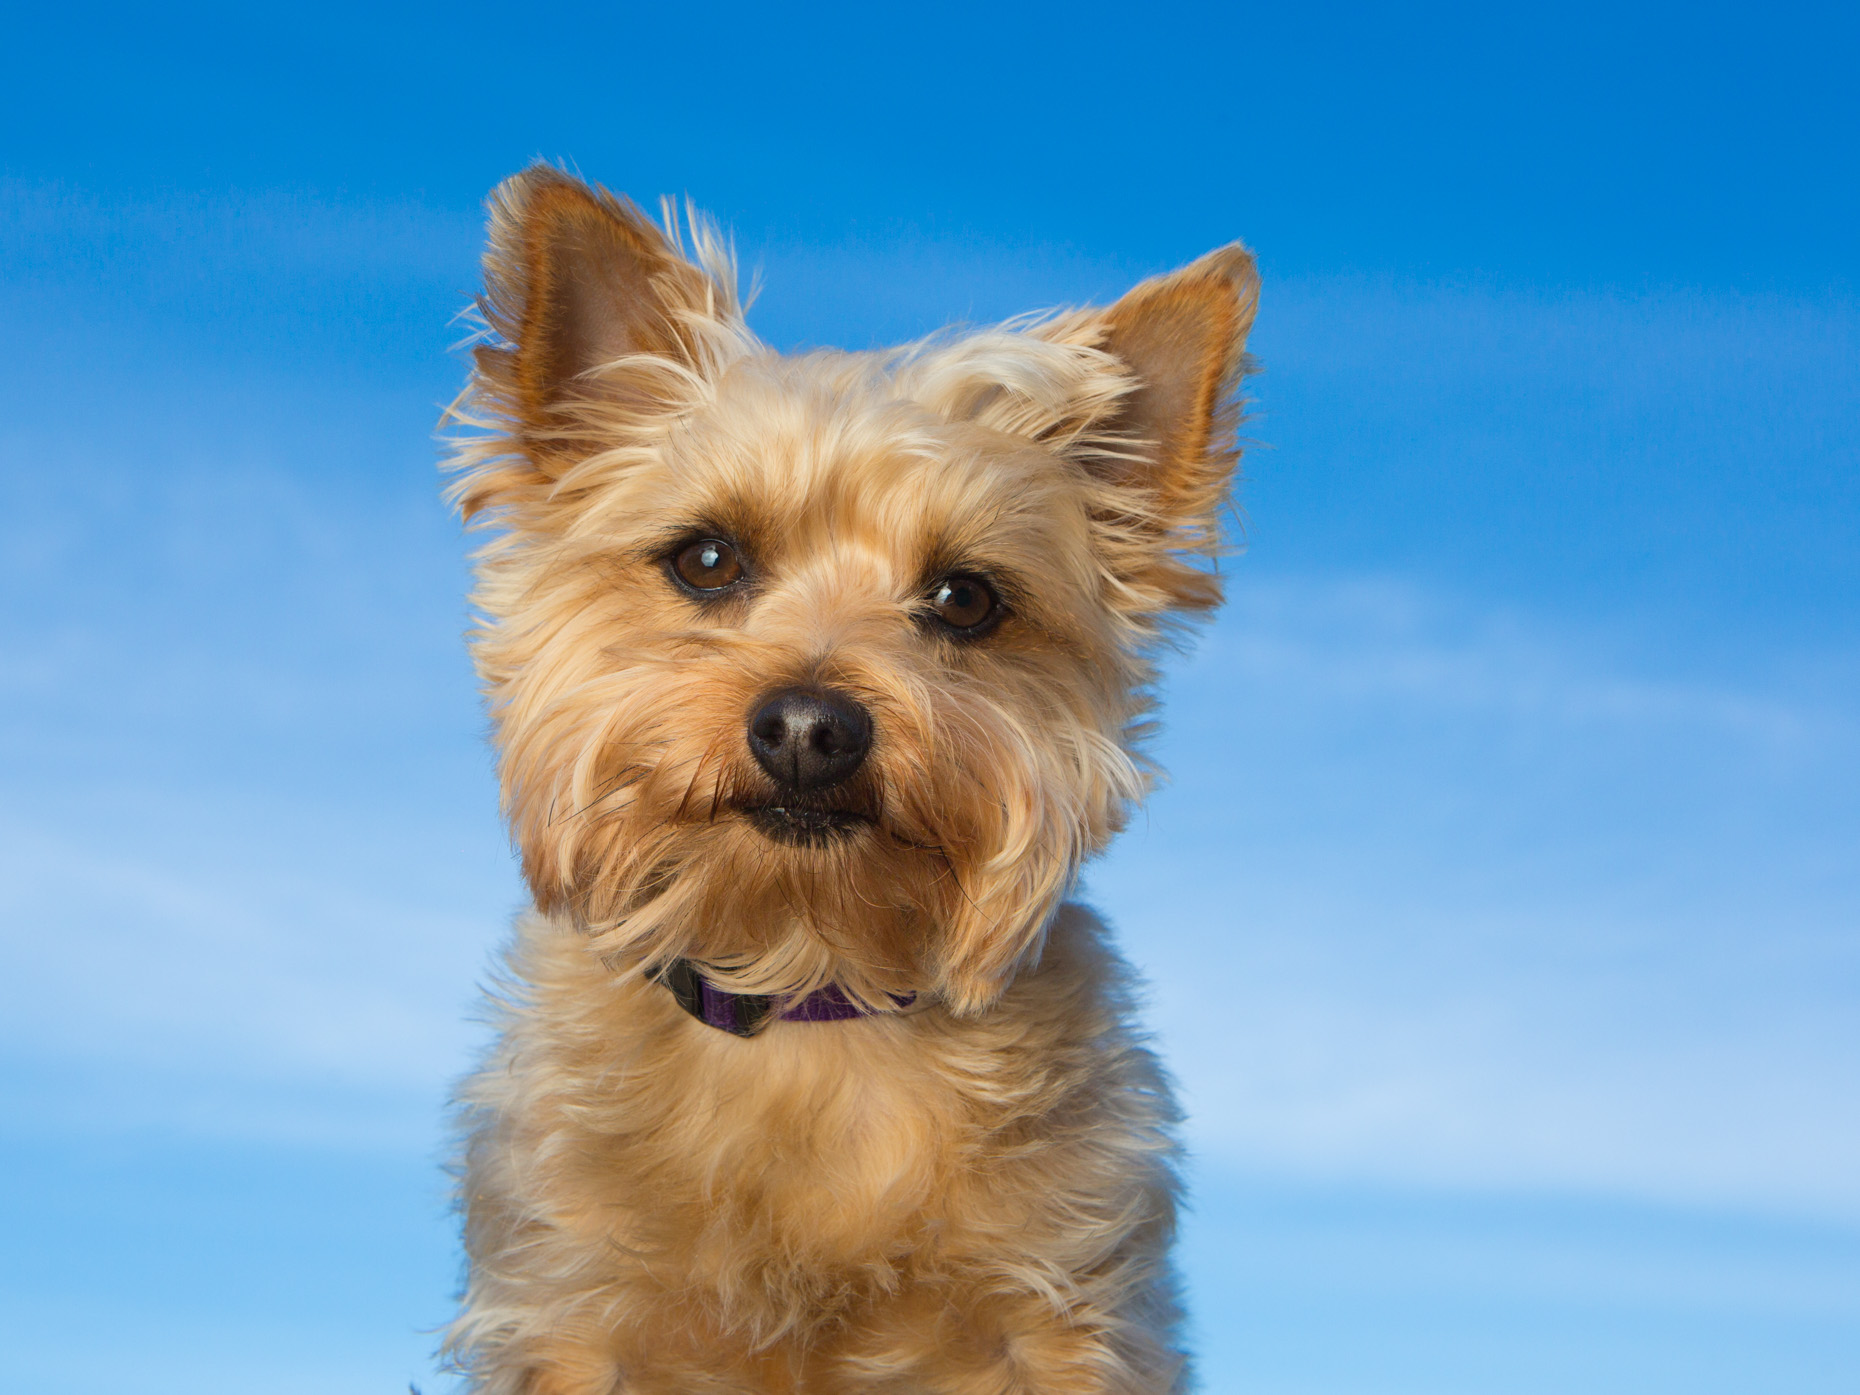 Dog Photography | Yorkshire Terrier against Sky by Mark Rogers